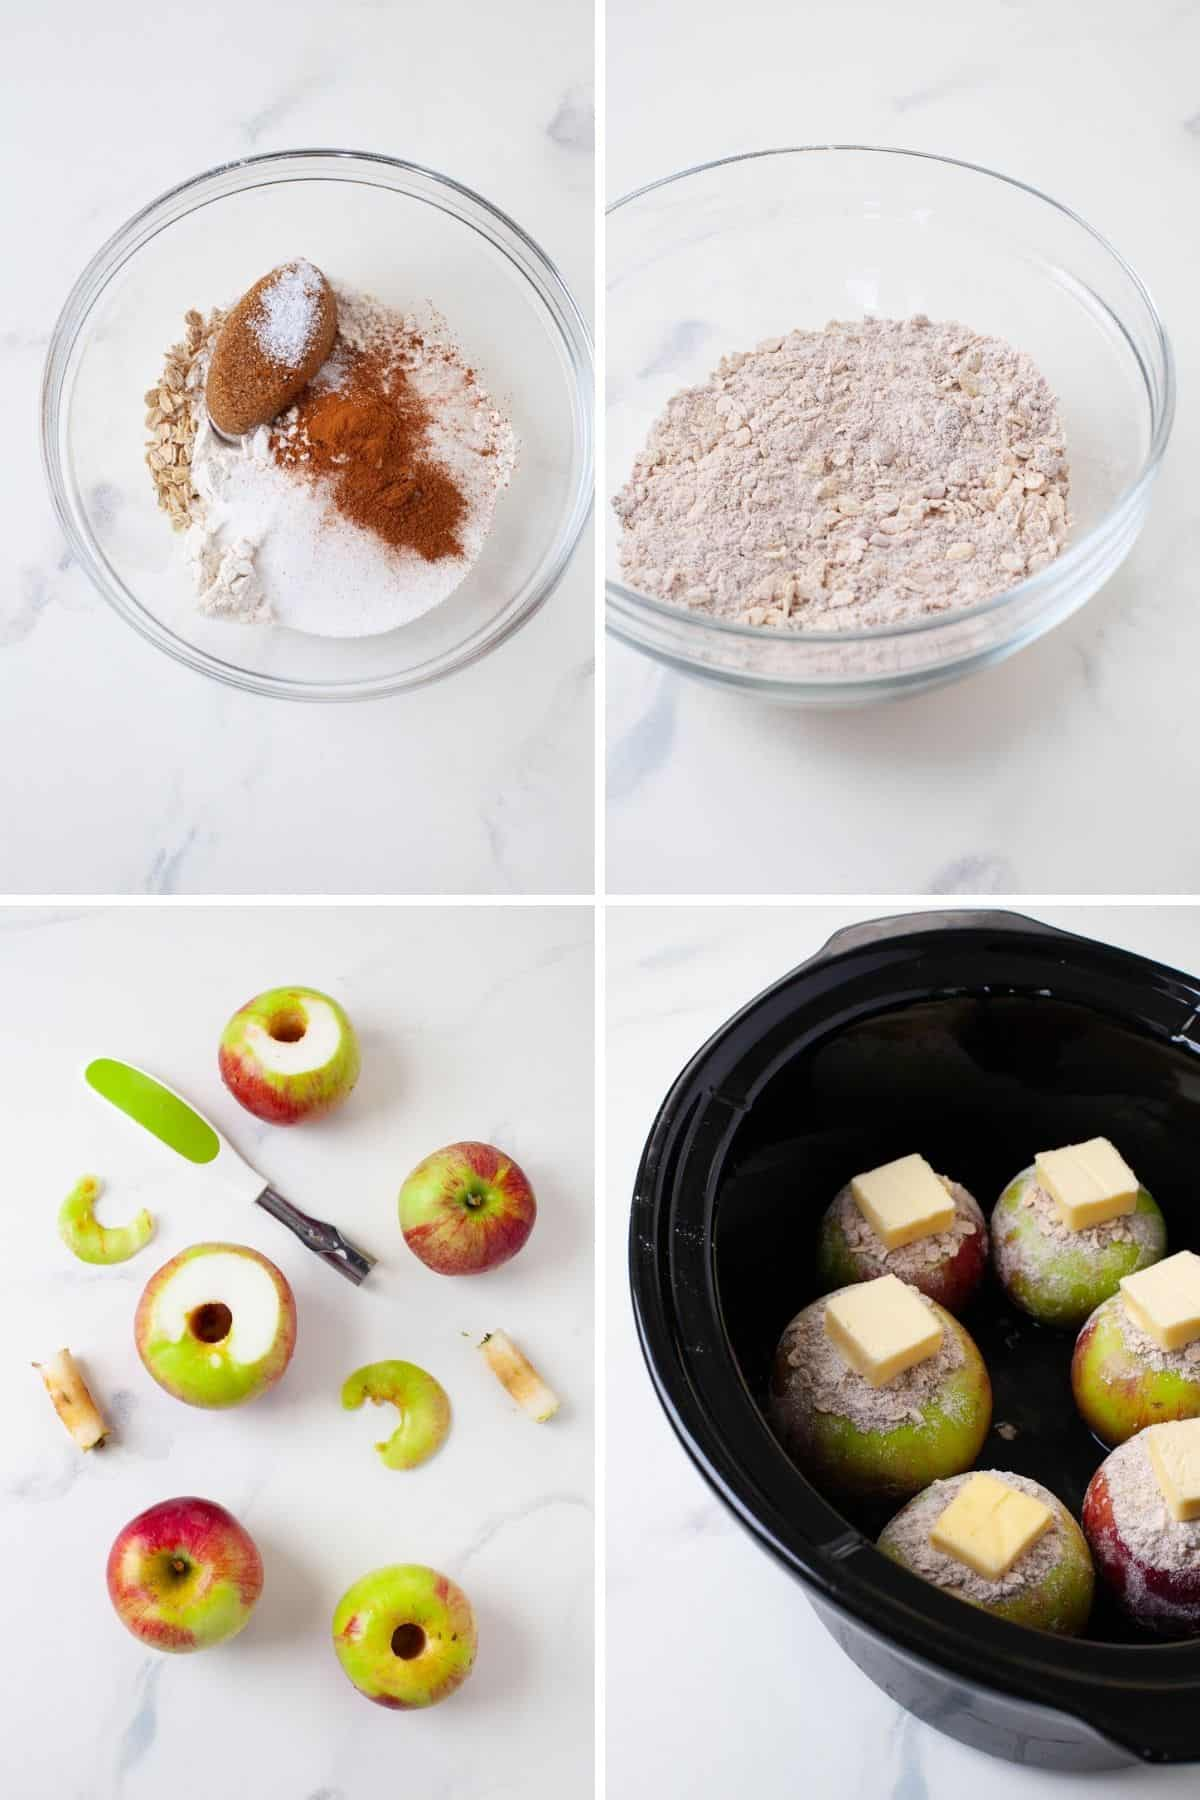 flour, cinnamon, sugar, and oats in bowl, apples with cores removed, and apples in slow cooker